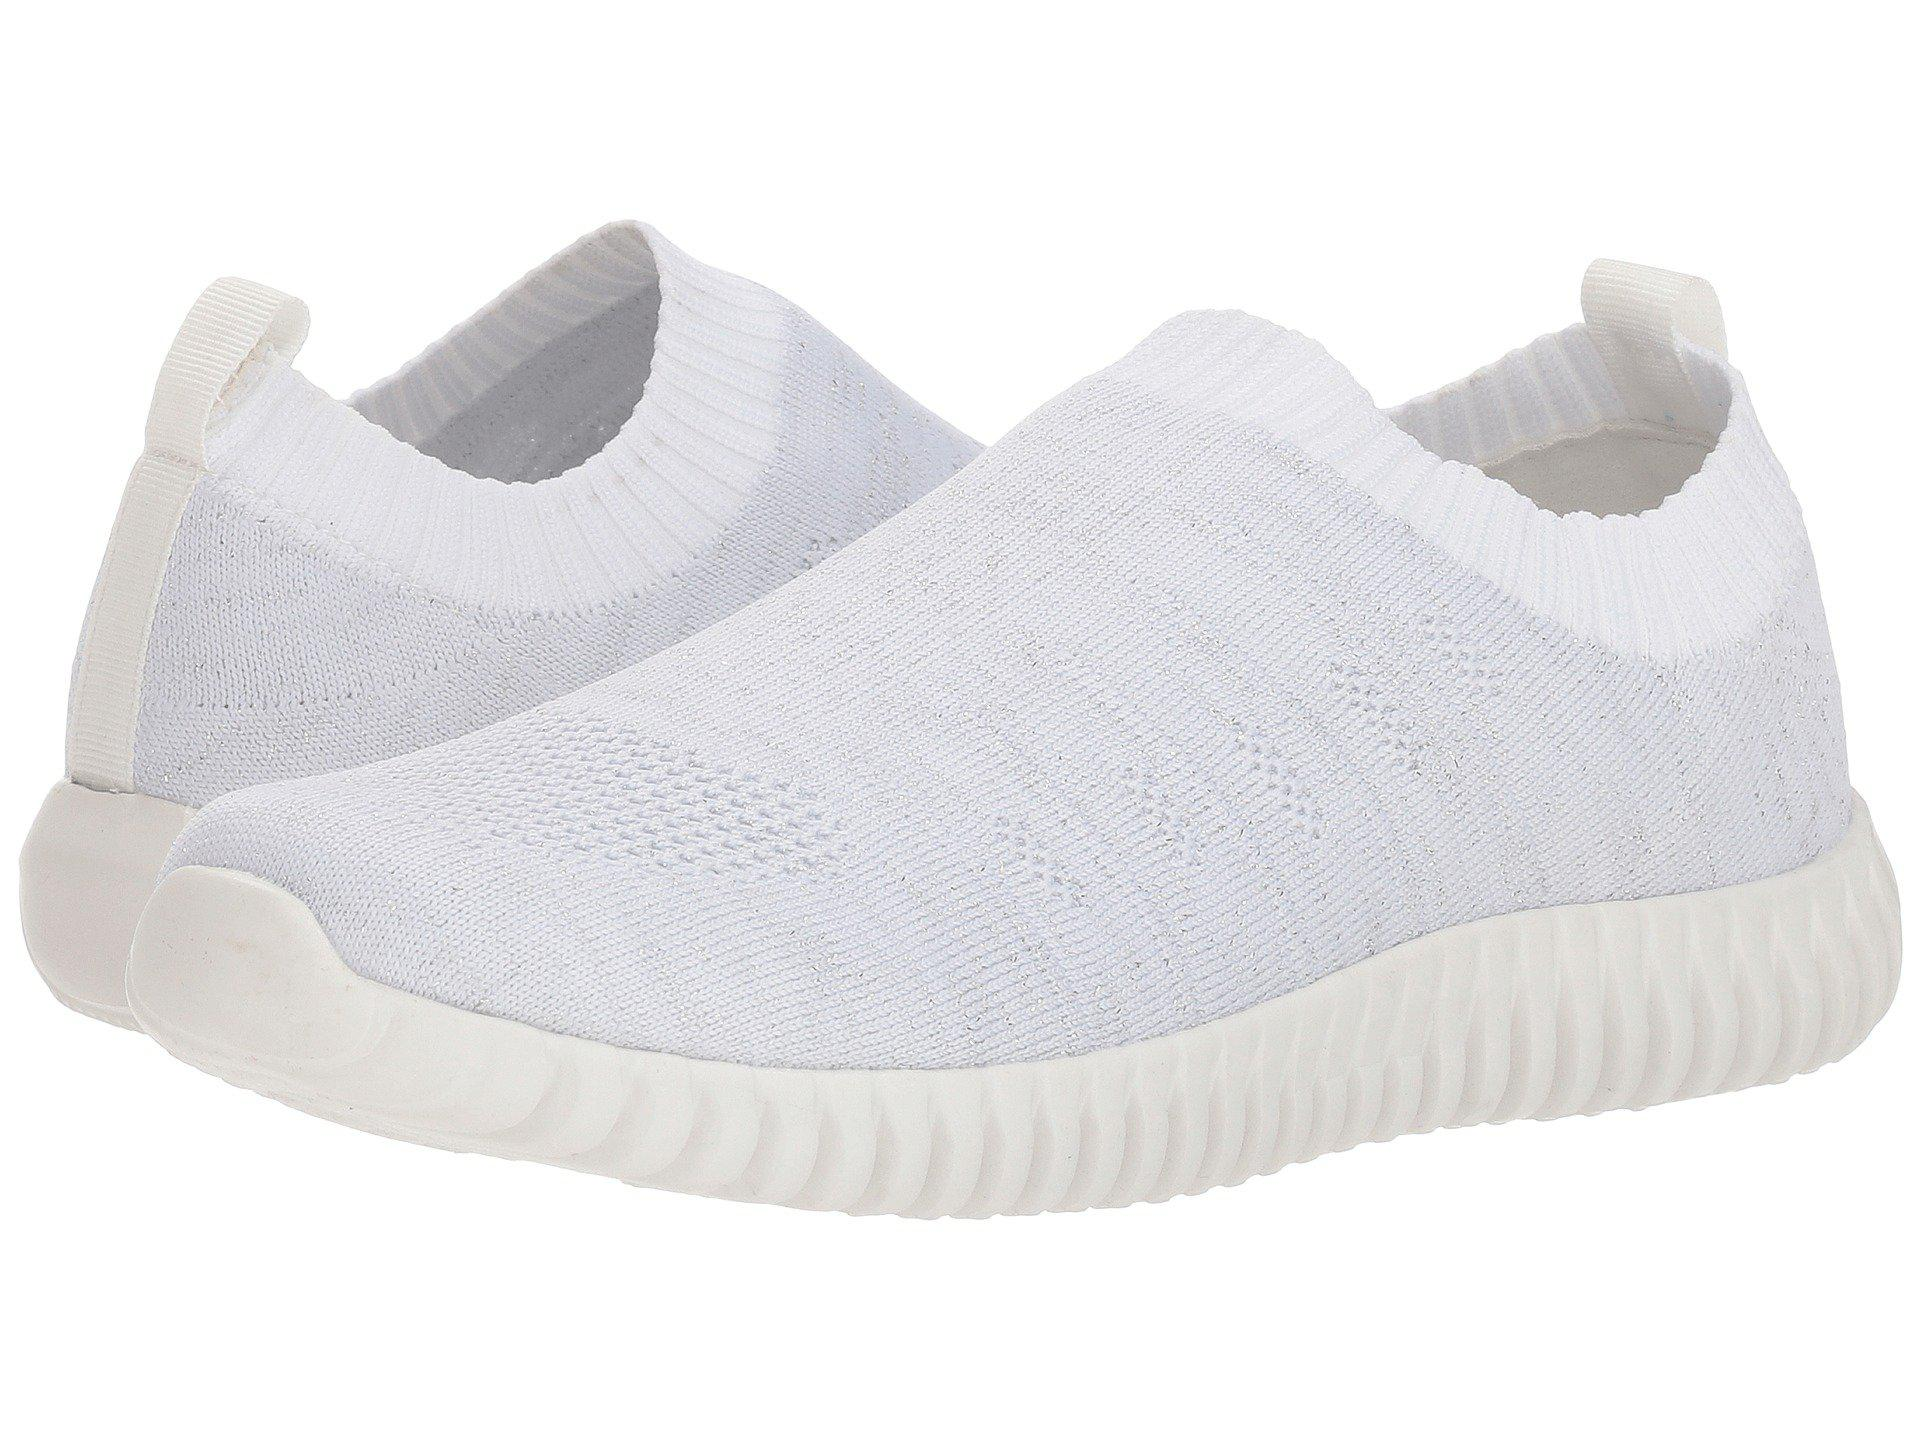 17427a7e6b7707 Lyst - Dirty Laundry Haywood Knit Sneaker in White